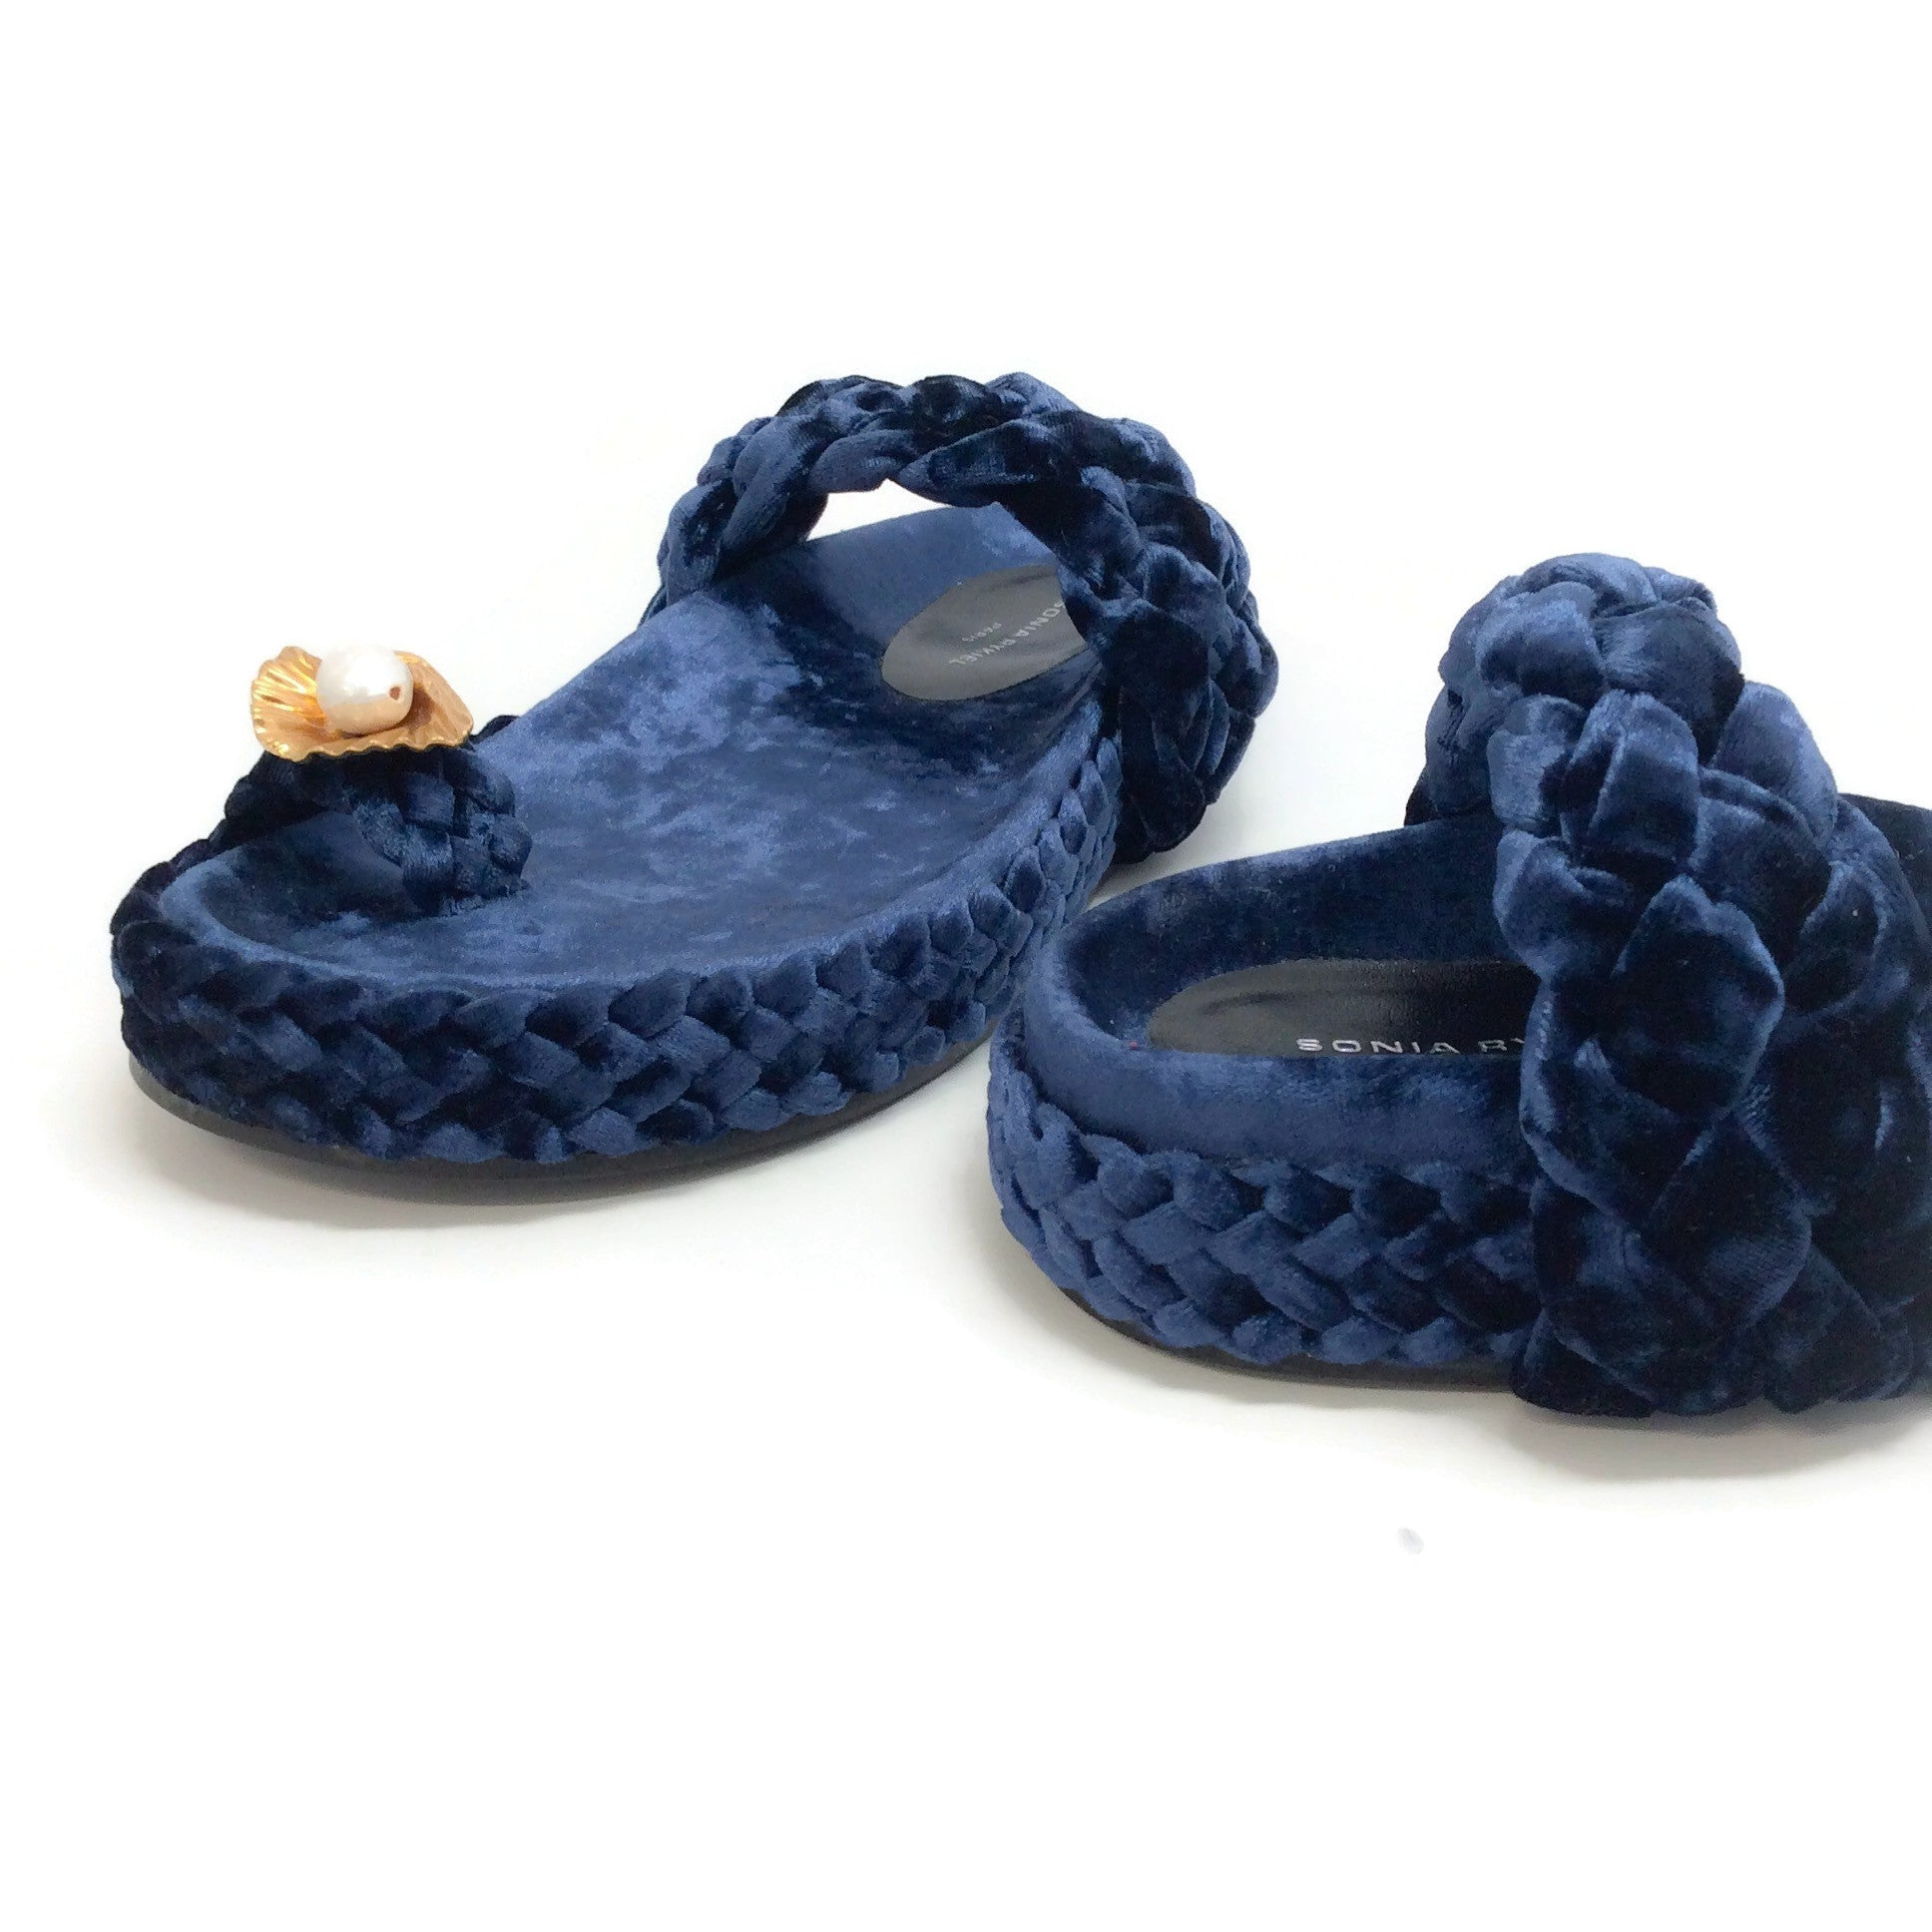 Sonia Rykiel Blue Velvet Braided Thong with Shell Sandals